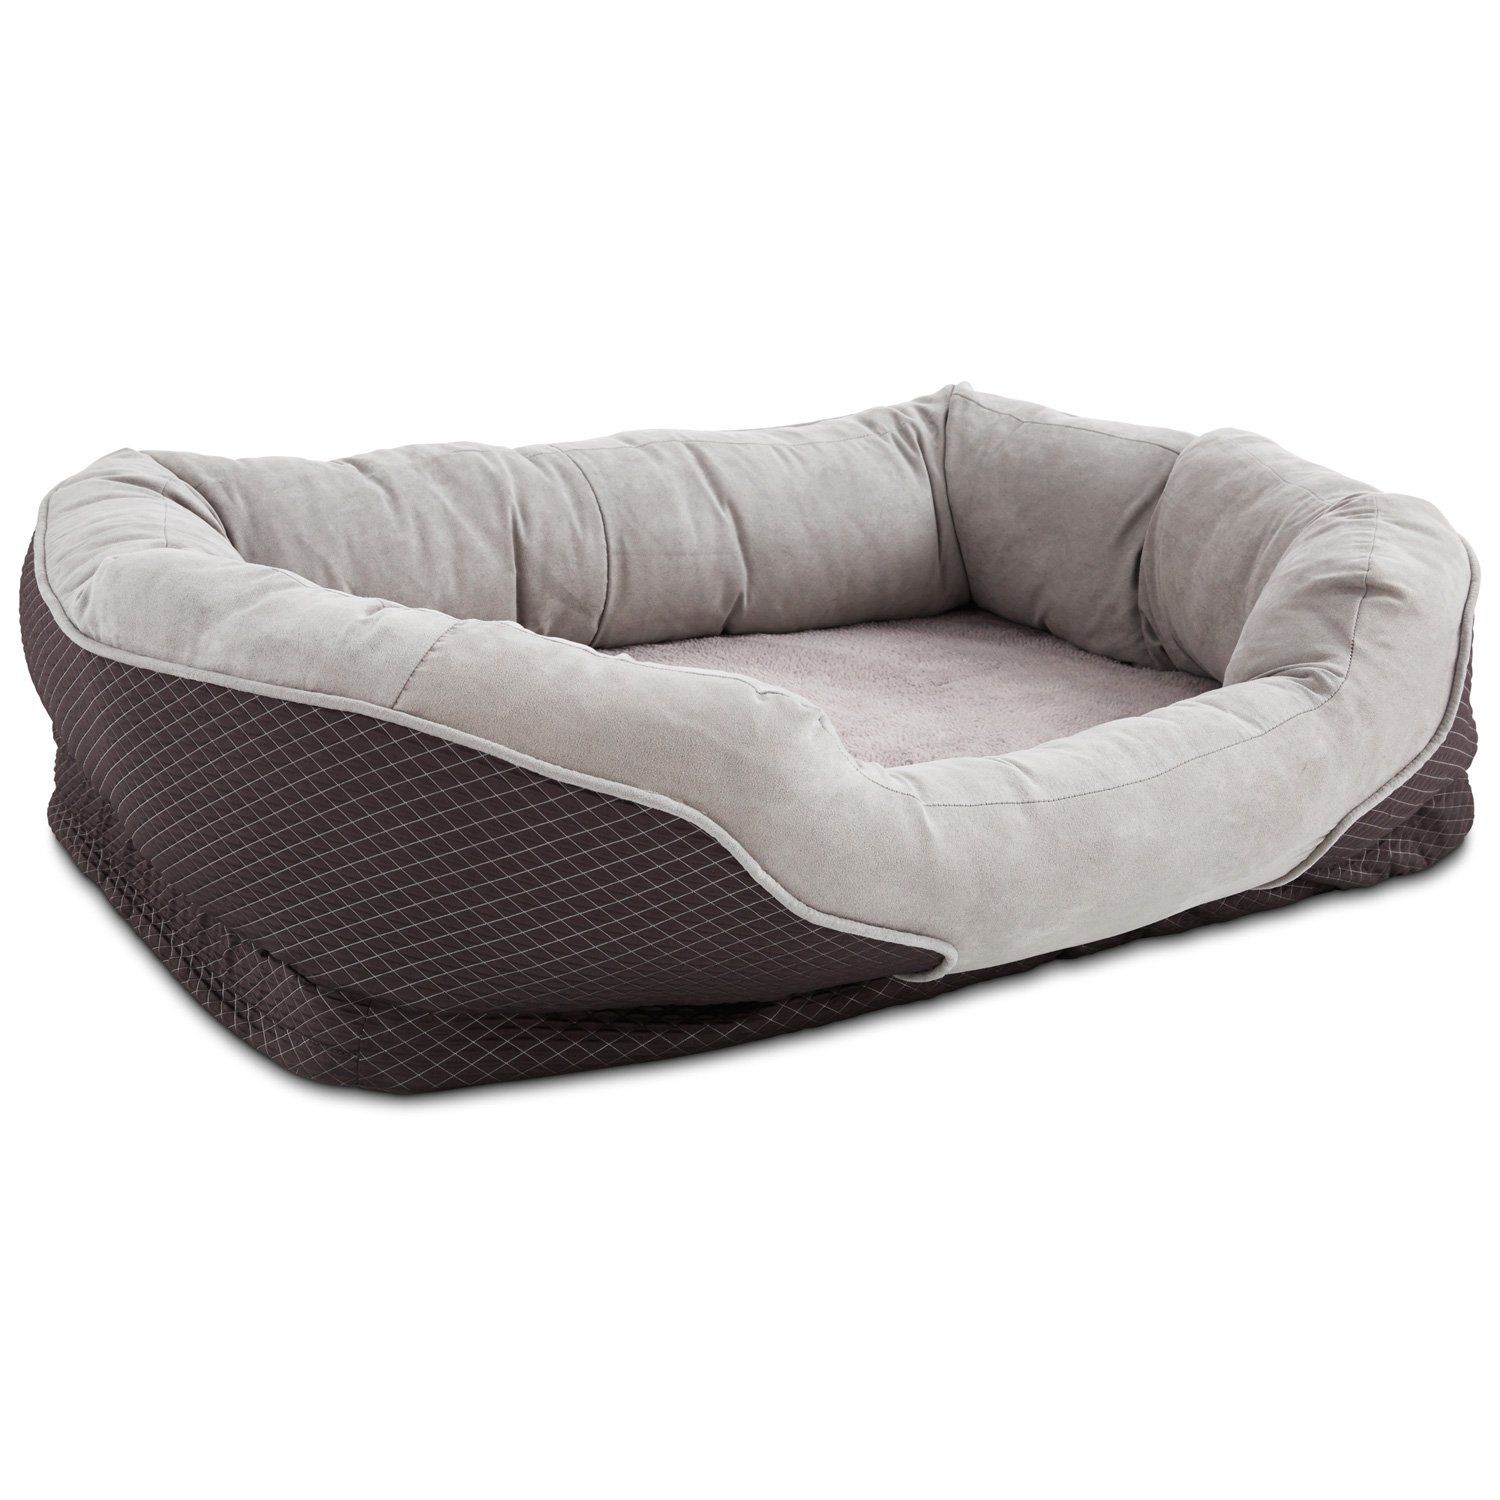 Dog Beds Pet Orthopedic Peaceful Nester Gray Dog Bed Petco